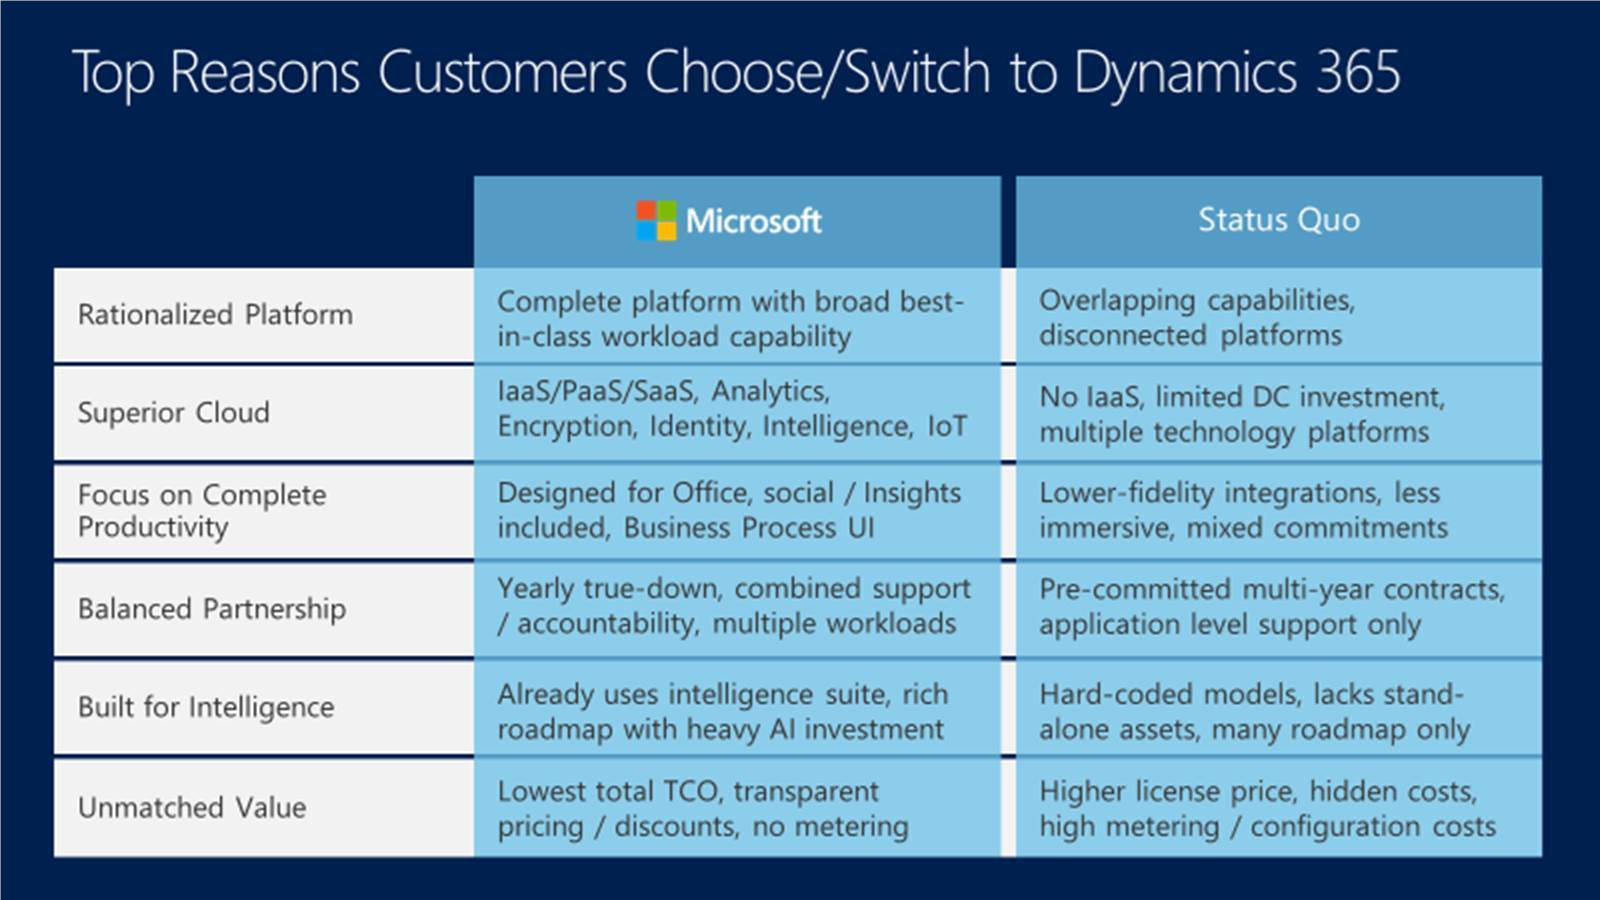 Top Reasons Customers Choose-Switch to Dynamics 365